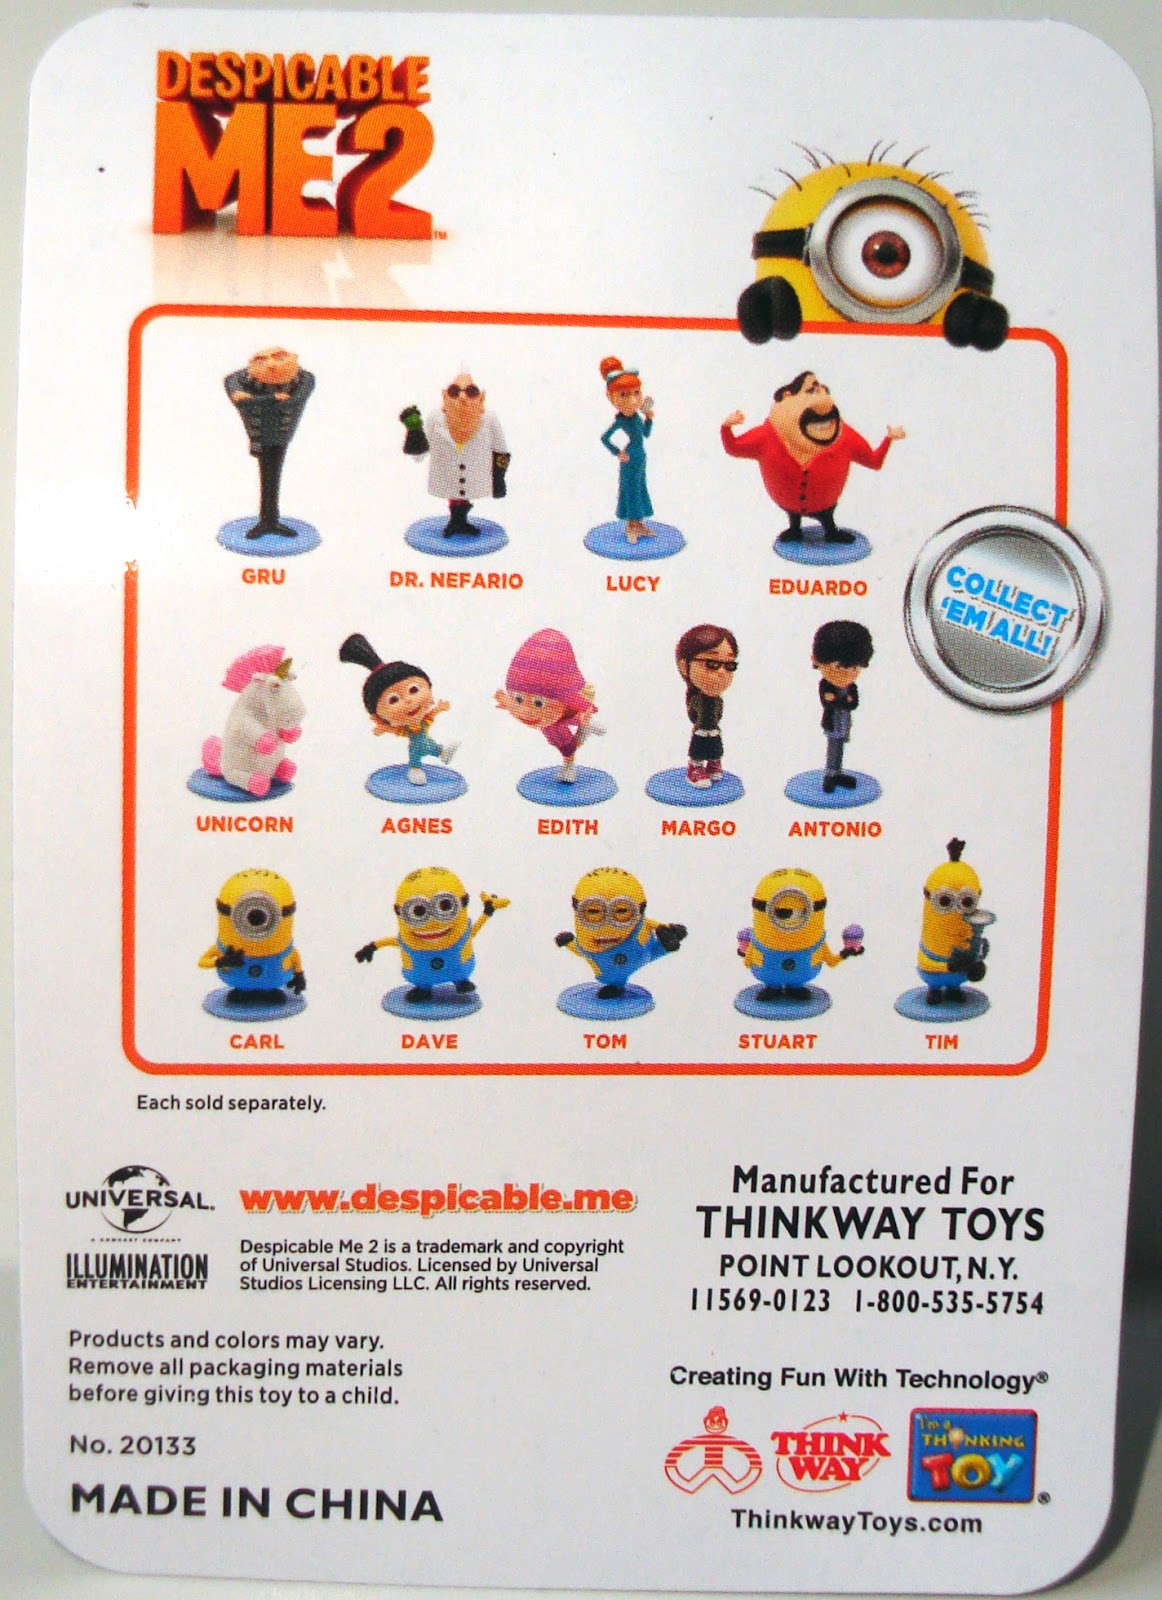 Despicable Me Minions Names List Thinkway toys x despicable meDespicable Me Minions Names List